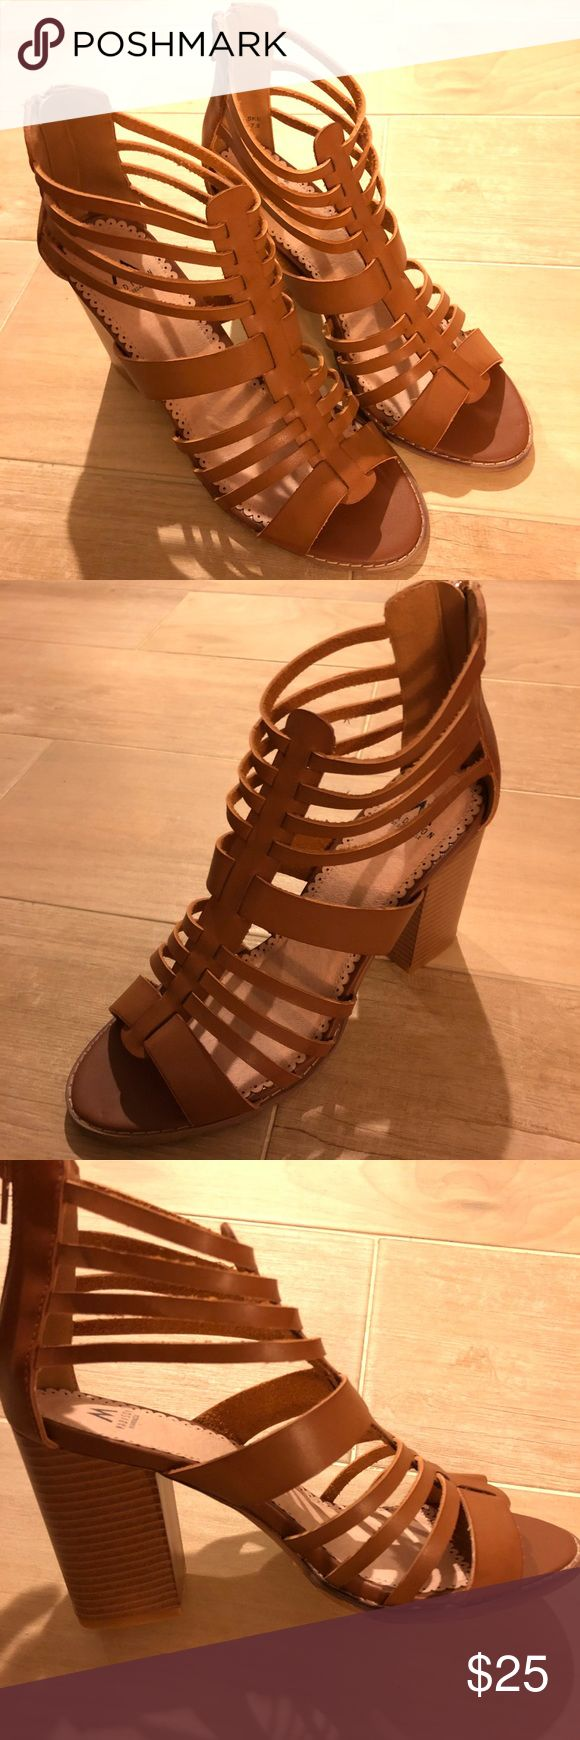 🆕 Camel Sandals Strappy Gladiator Casual Heels 8 New, in box  Labeled as 7.5 but feels like 8-8.5 Shoes Sandals